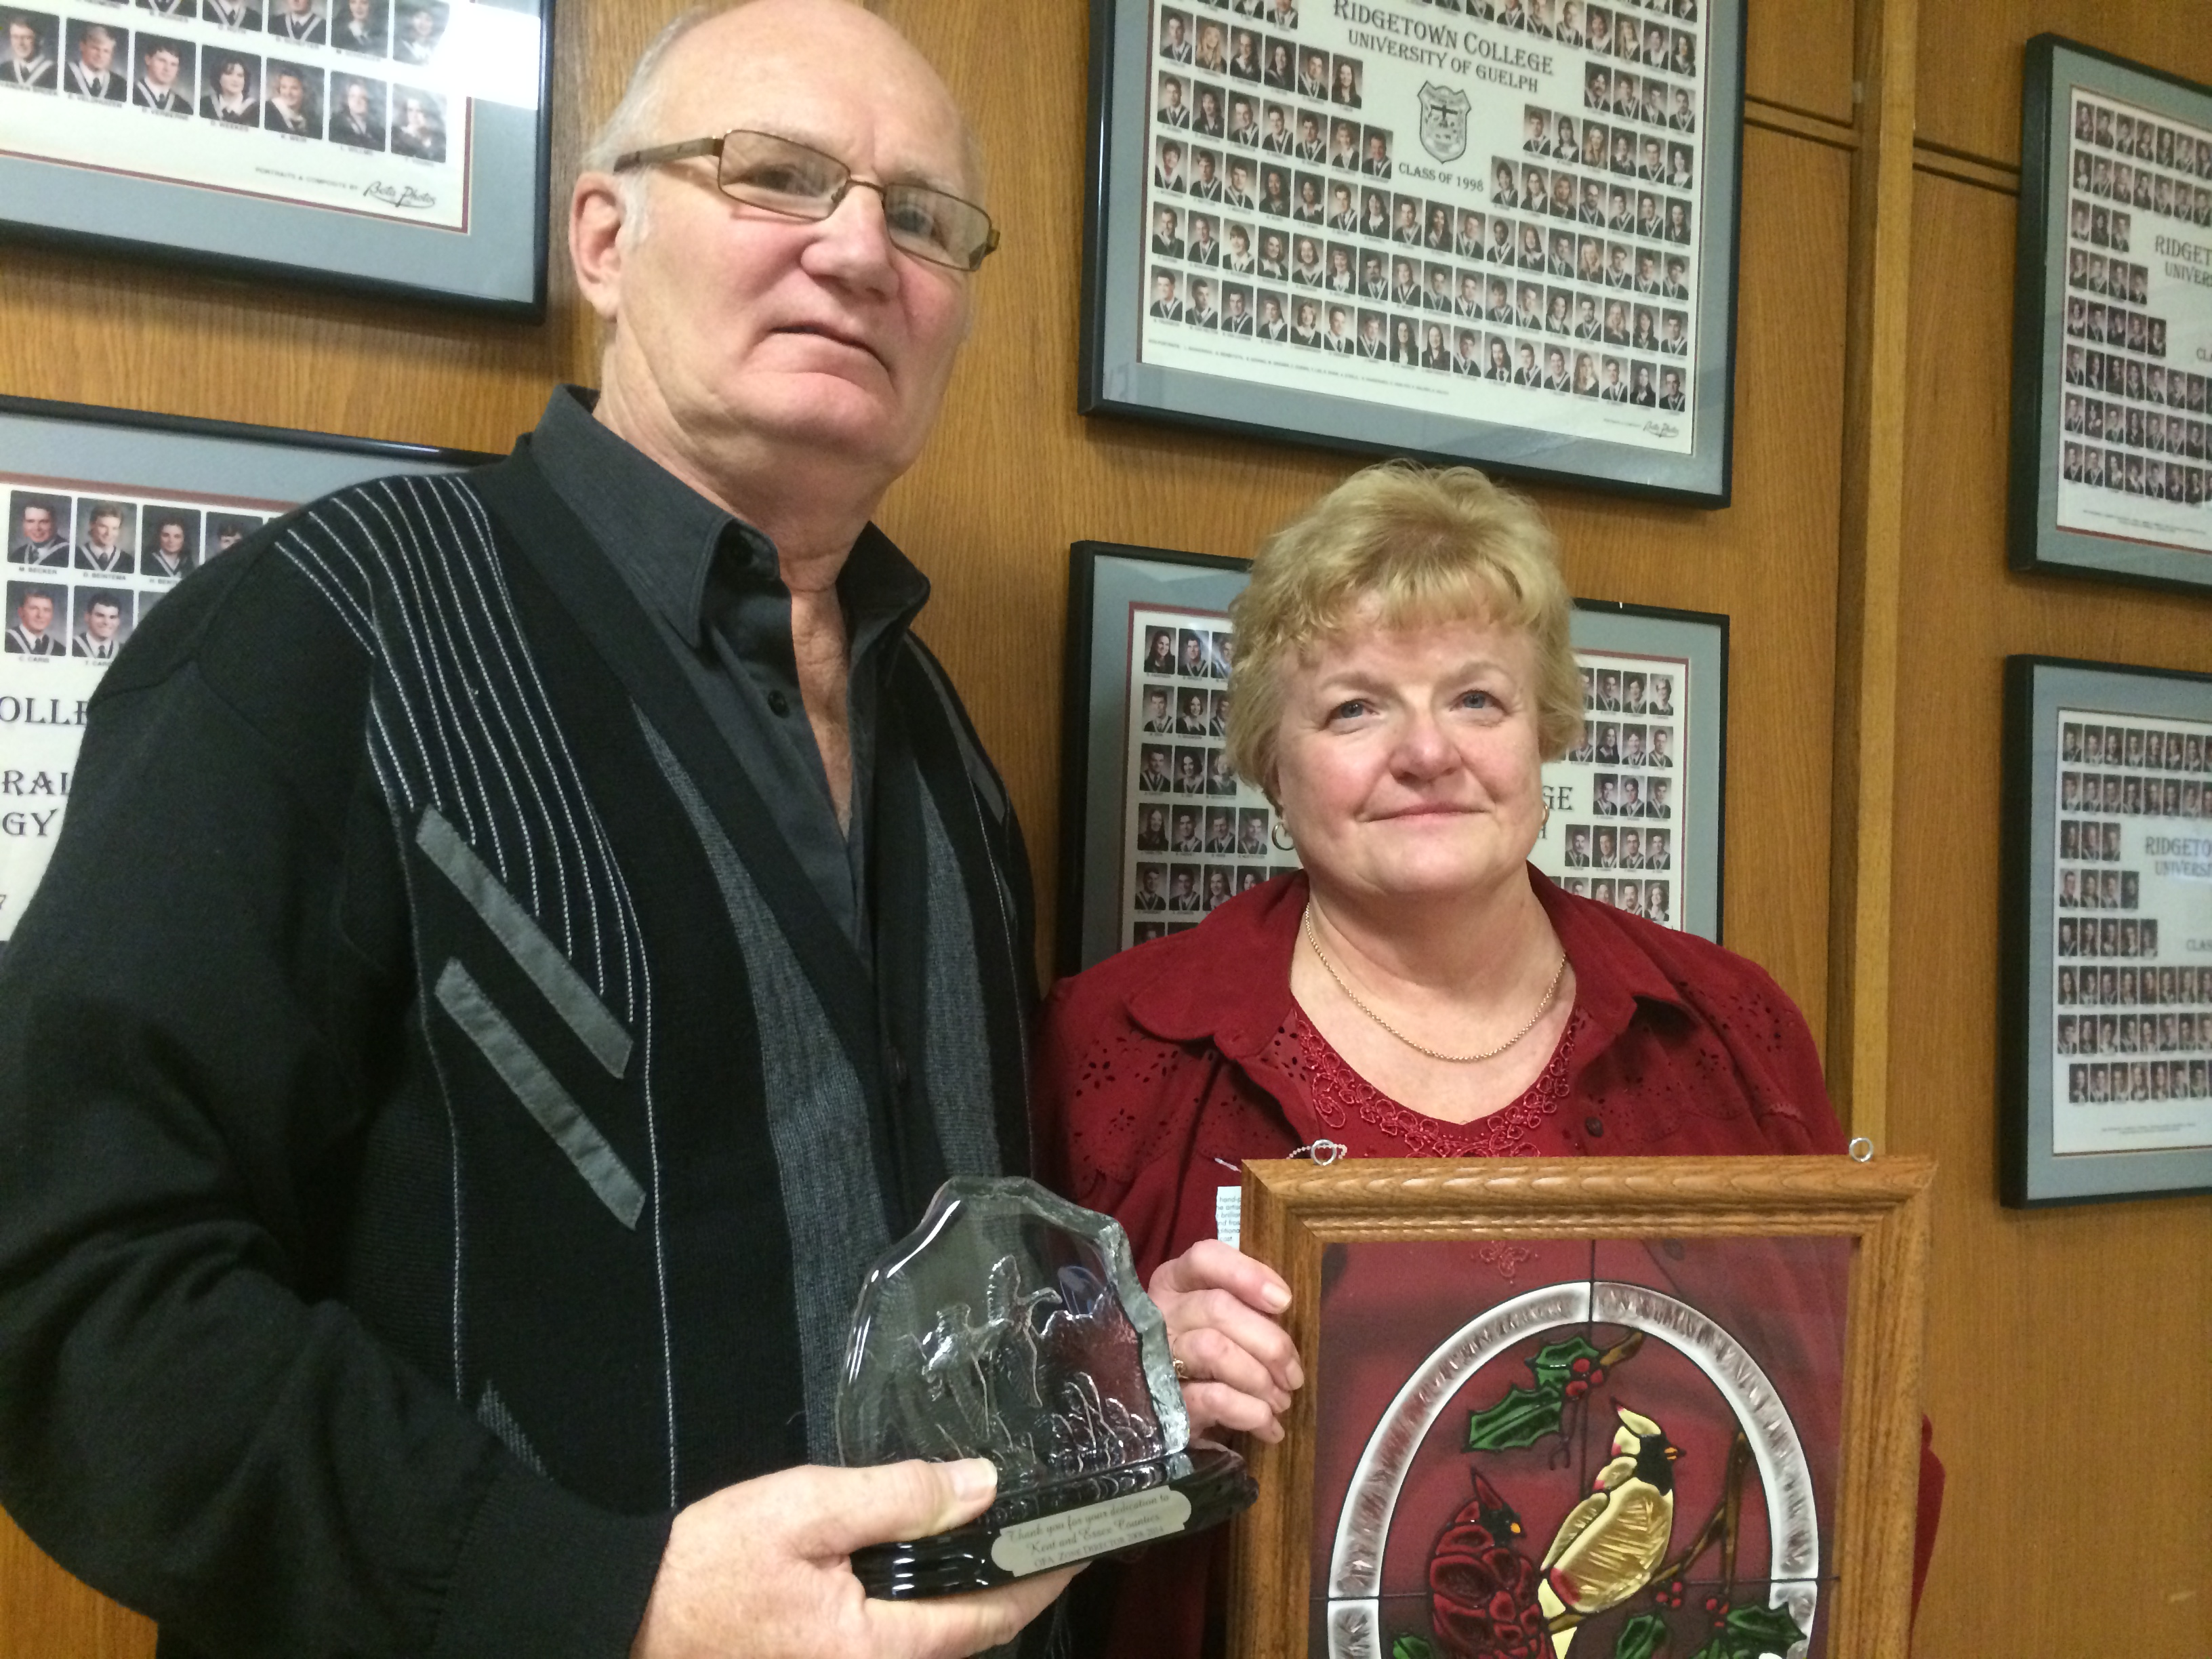 Ralph Brodie (left) is seen with his wife after receiving a special award for dedication to agriculture from the Kent Federation of Agriculture. (Photo by Ricardo Veneza)